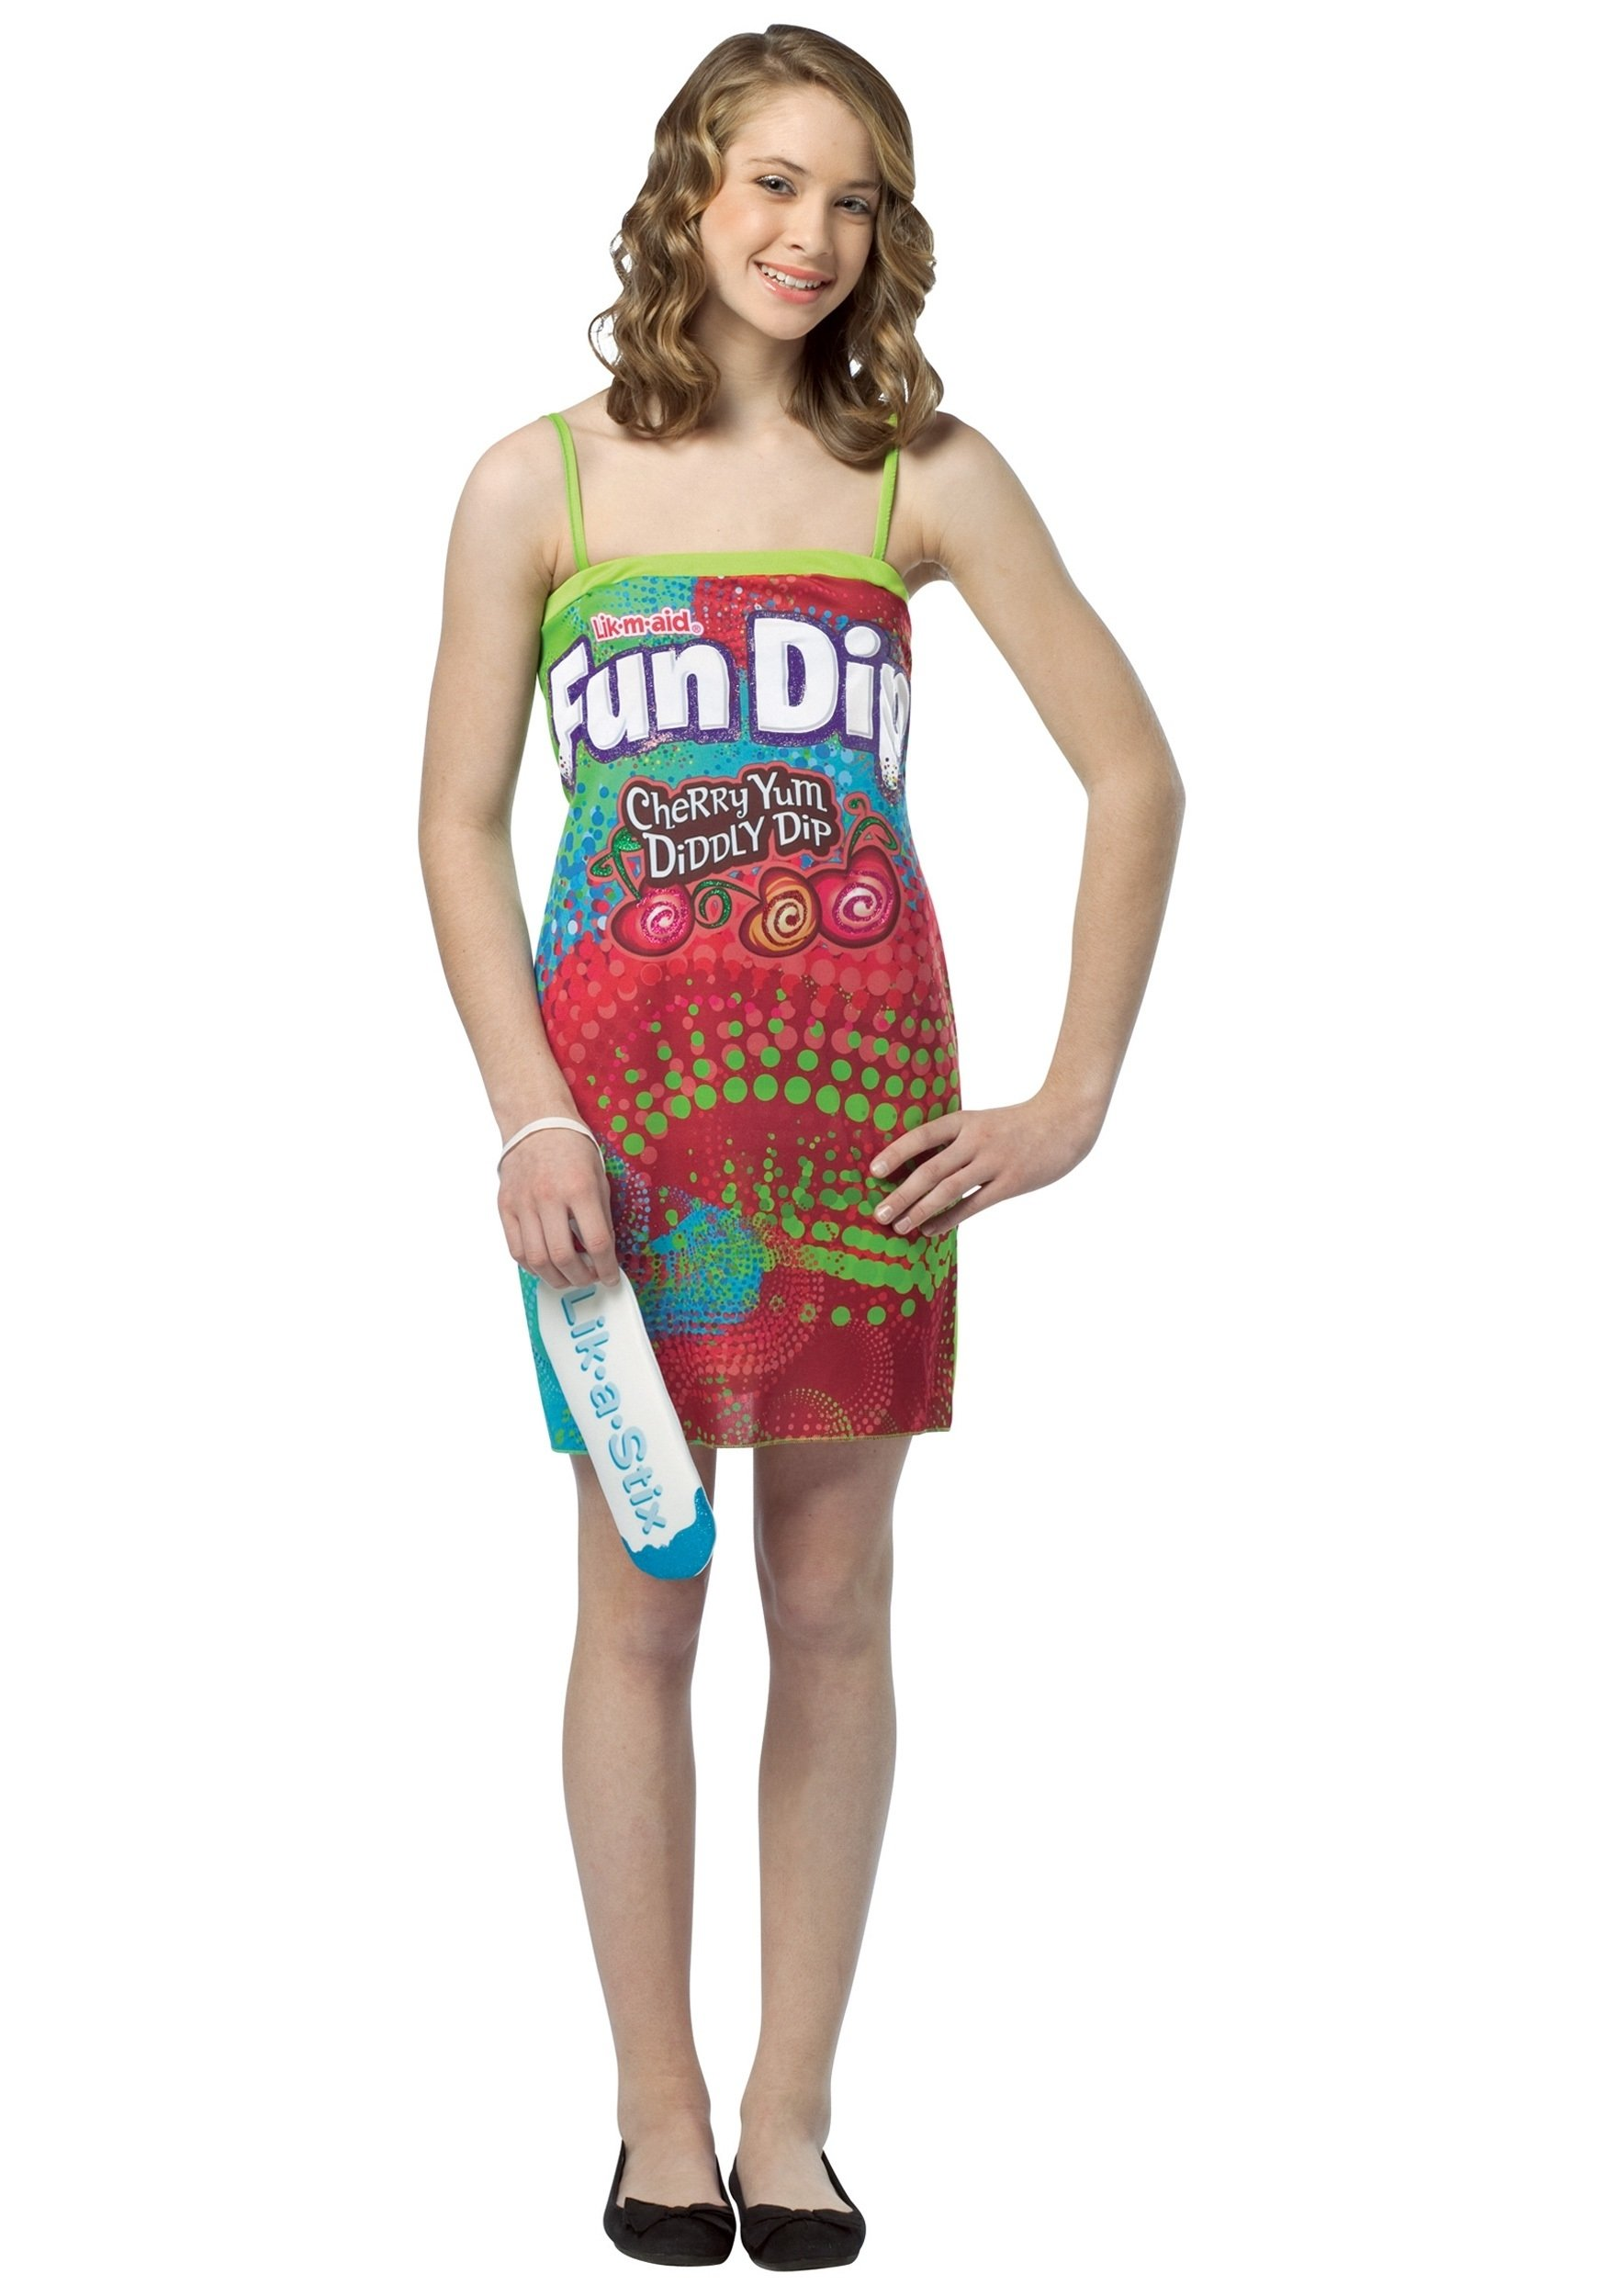 10 Famous Funny Costume Ideas For Women teen fun dip dress halloween costumes 2 2021